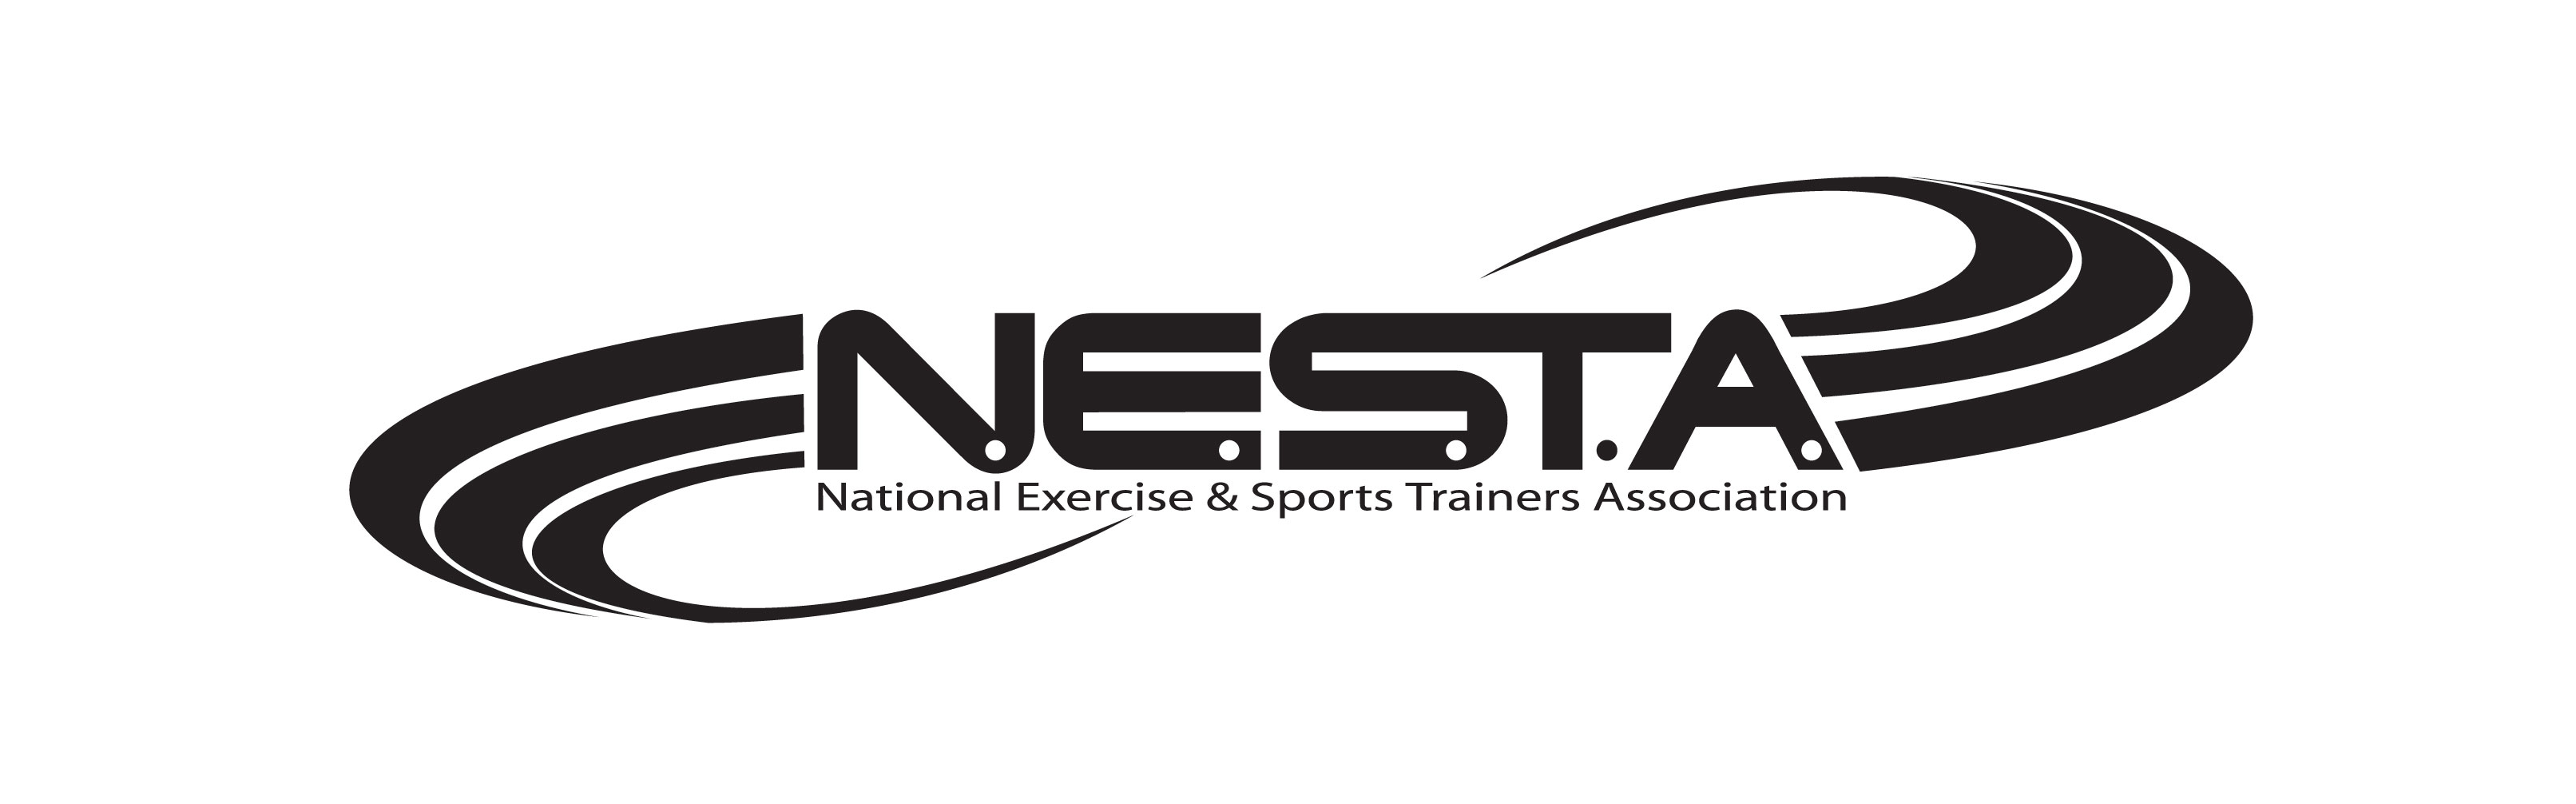 Sports and education come together with national exercise sports nesta fitness schoolfitness education and certification accredited personal training certification xflitez Image collections